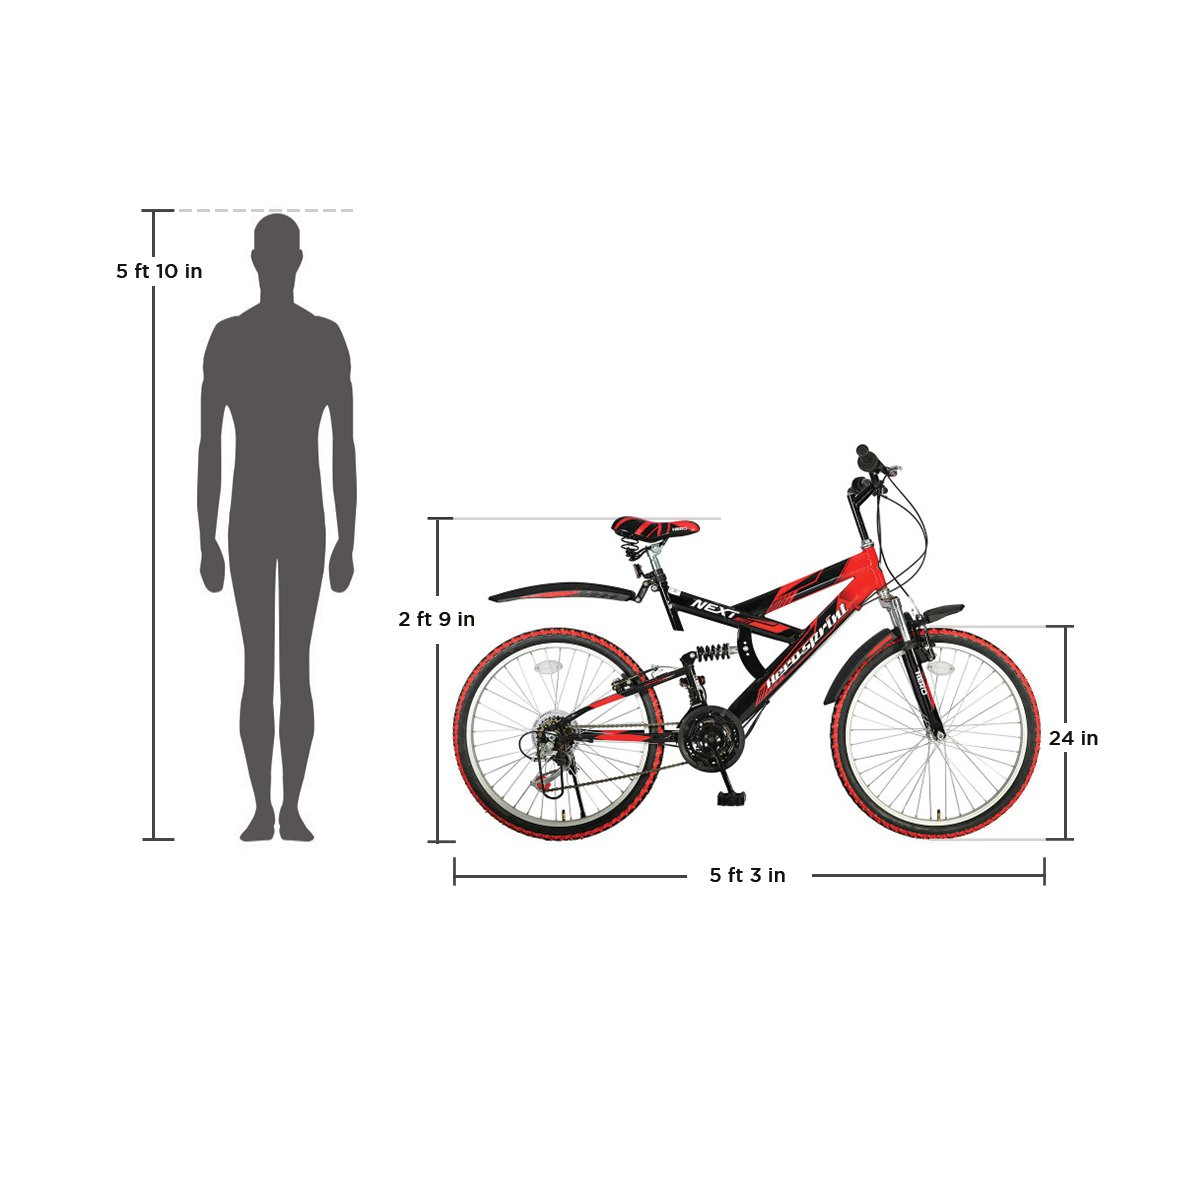 Buy Hero Next 24t 18 Speed Mountain Cycle Red Black Online At Low Bike Stand Super B Prices In India